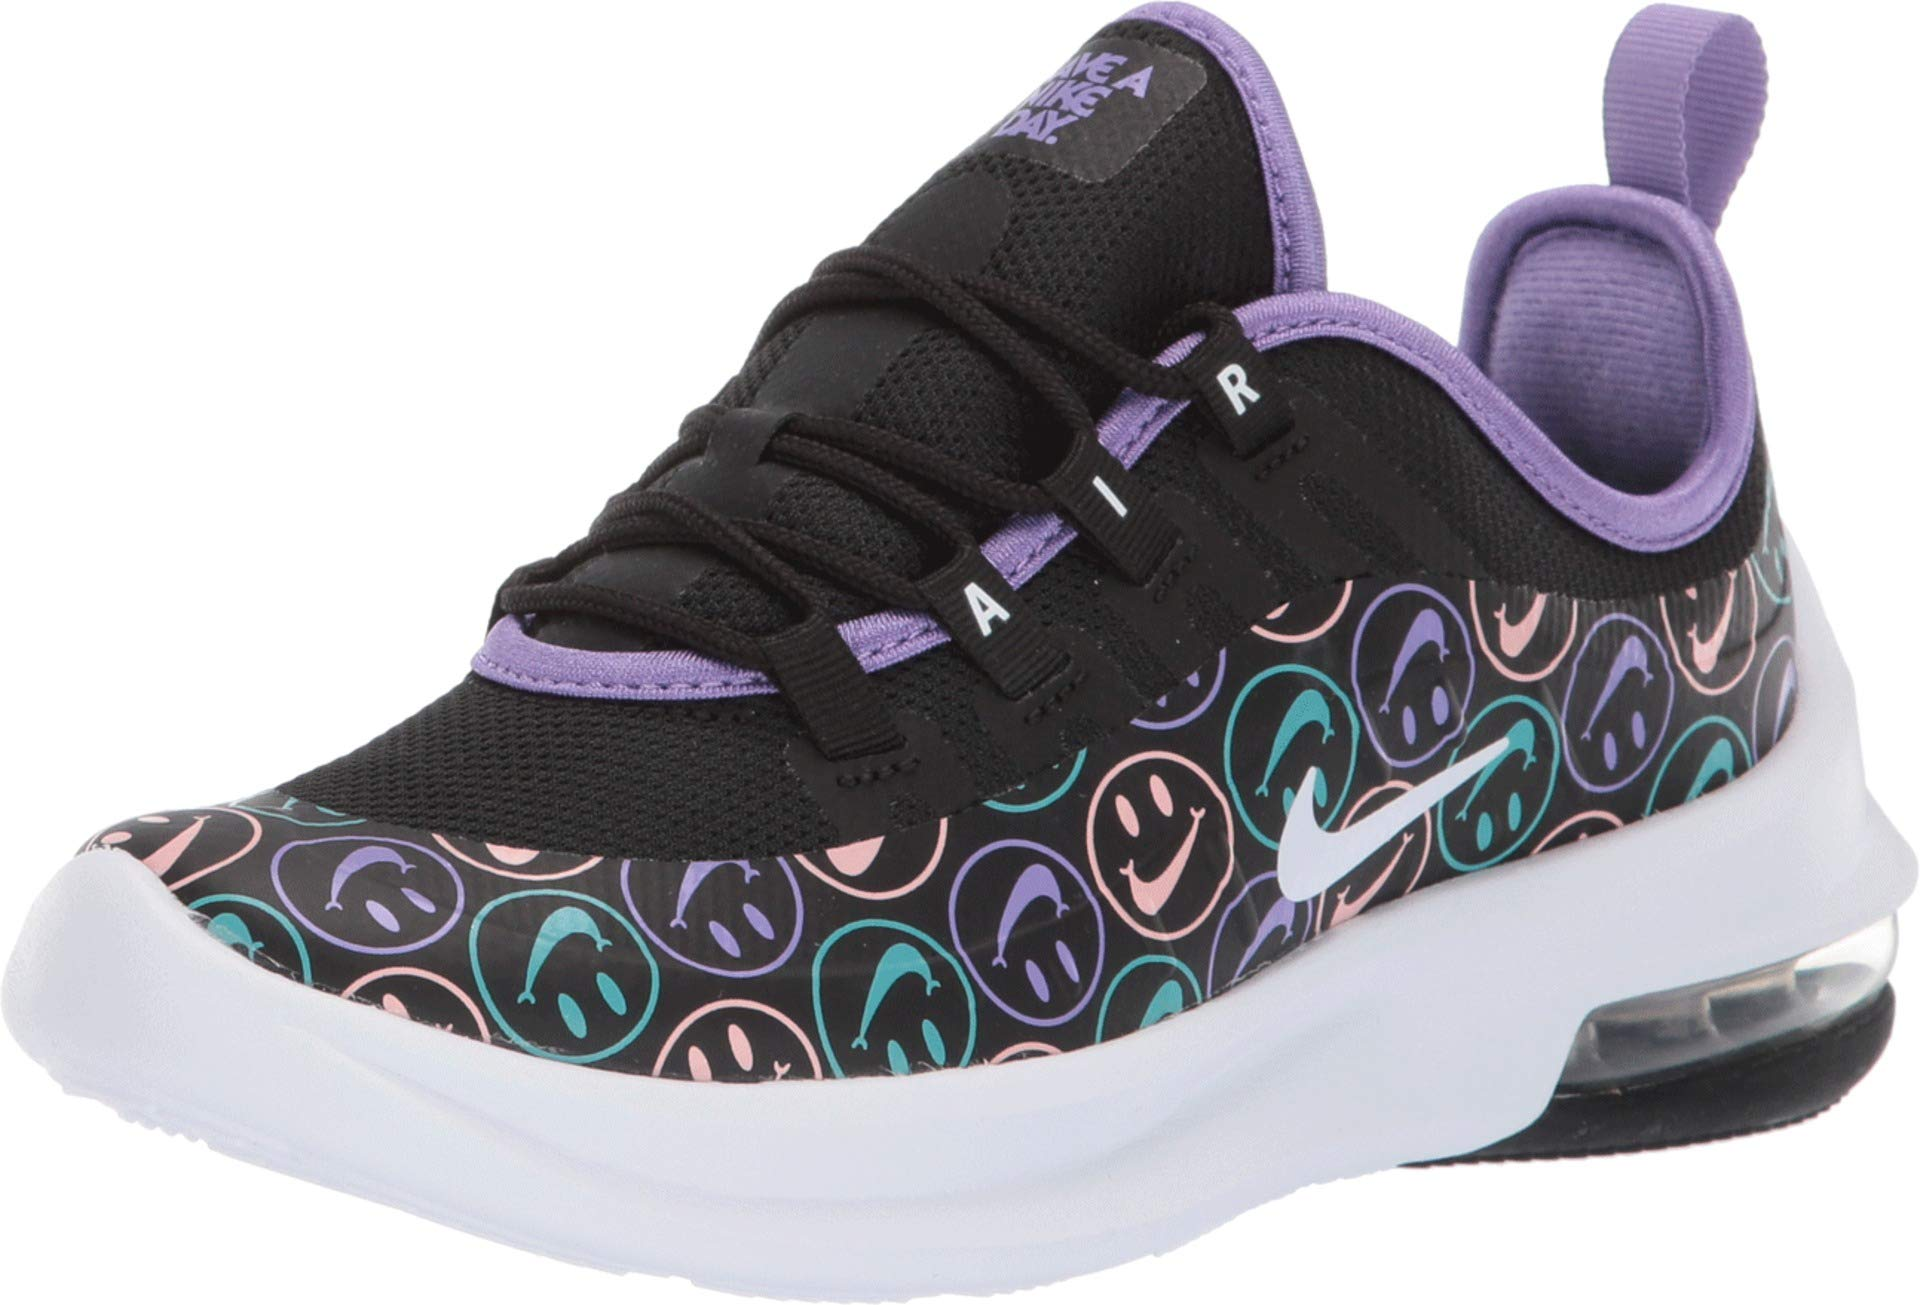 Nike Boy's Air Max Axis (PS) Pre School Shoe Black/White/Space Purple/Hyper Jade Size 2 M US by Nike